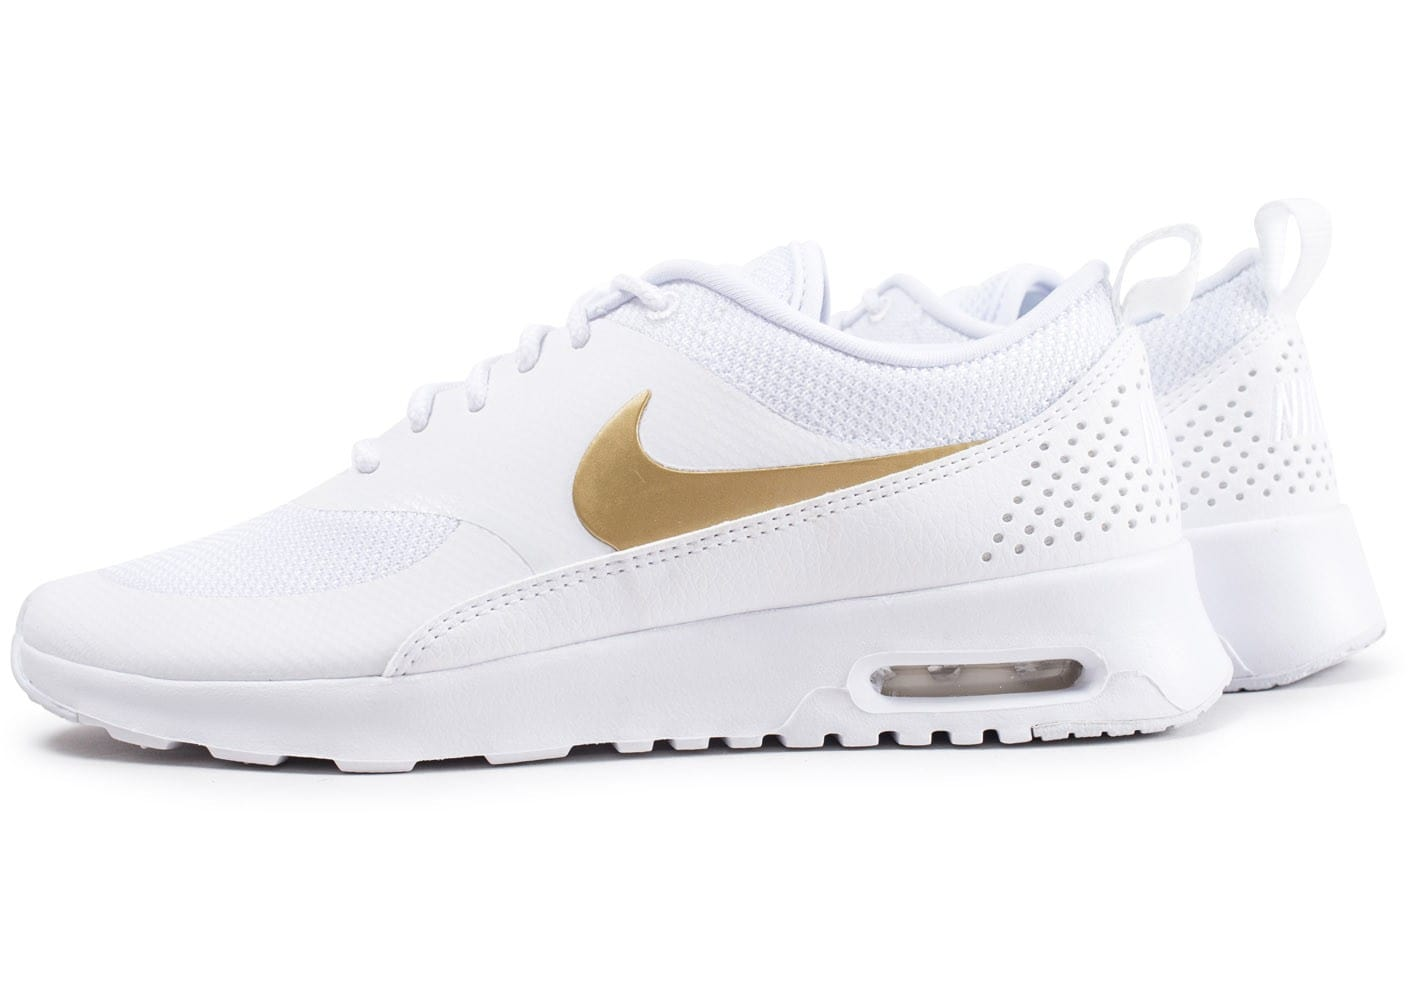 nike tn femme blanche et or